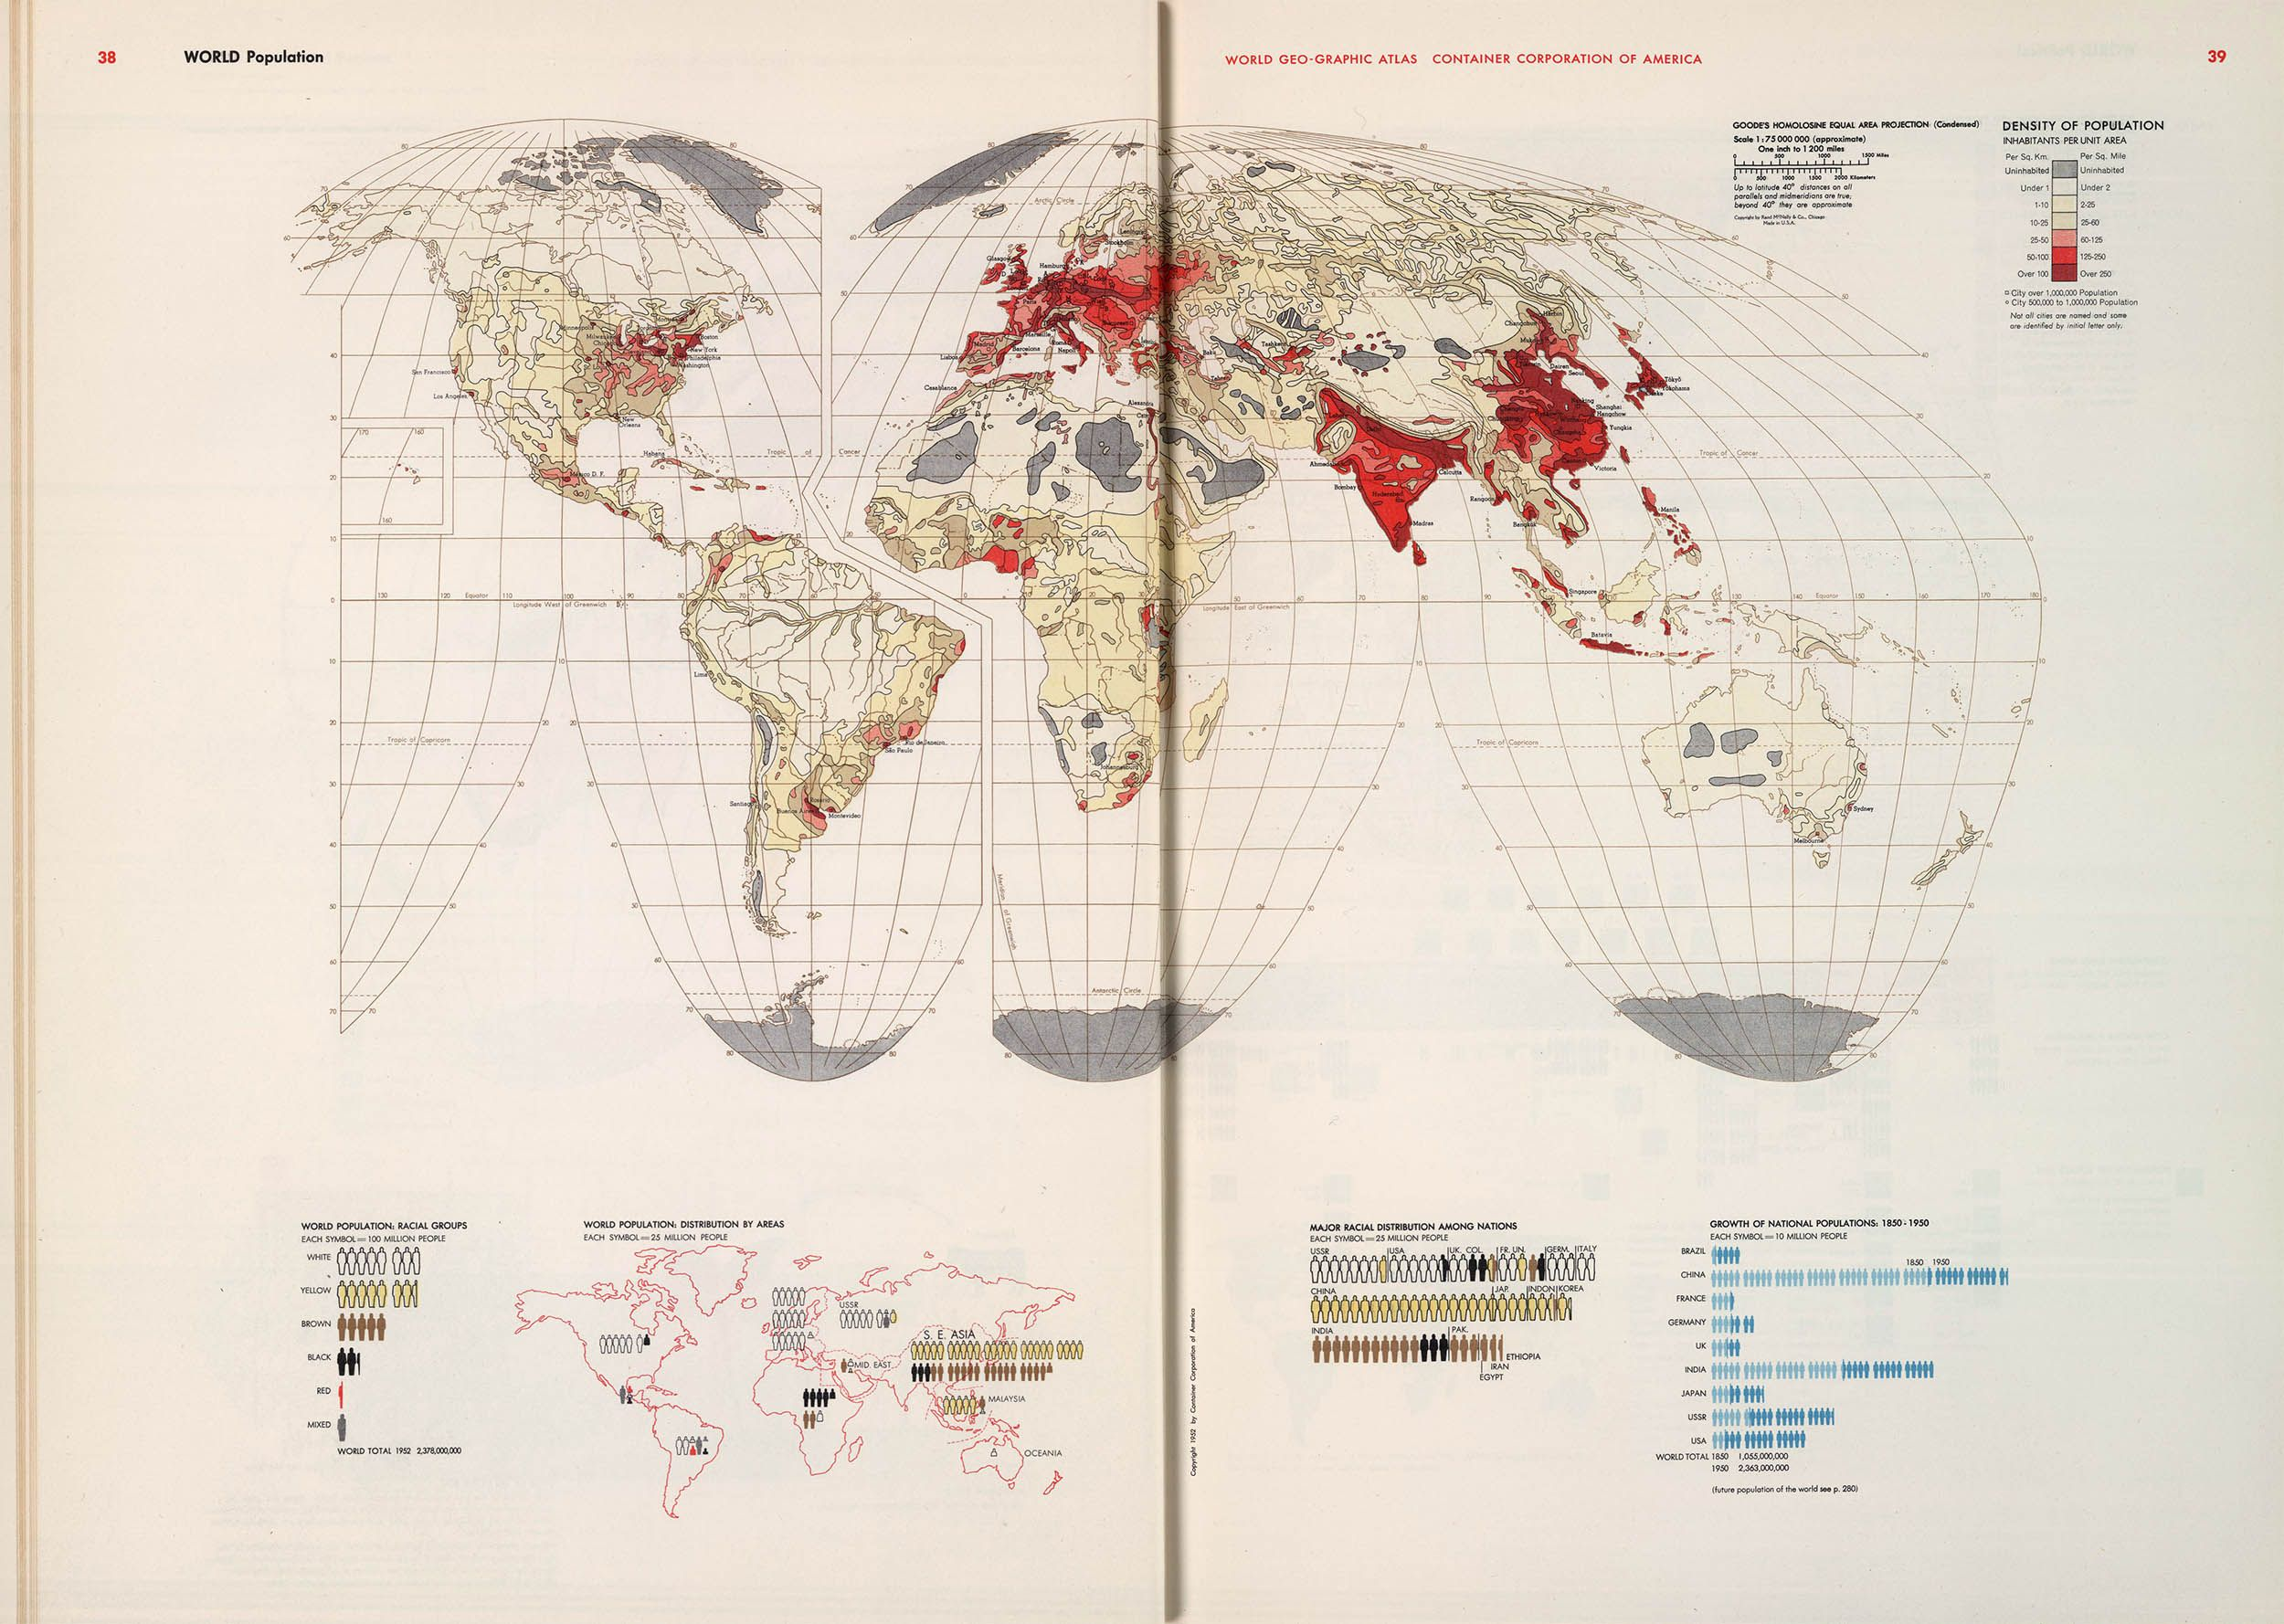 002 The World GeoGraphical Atlas Herbert Bayer and the CCA